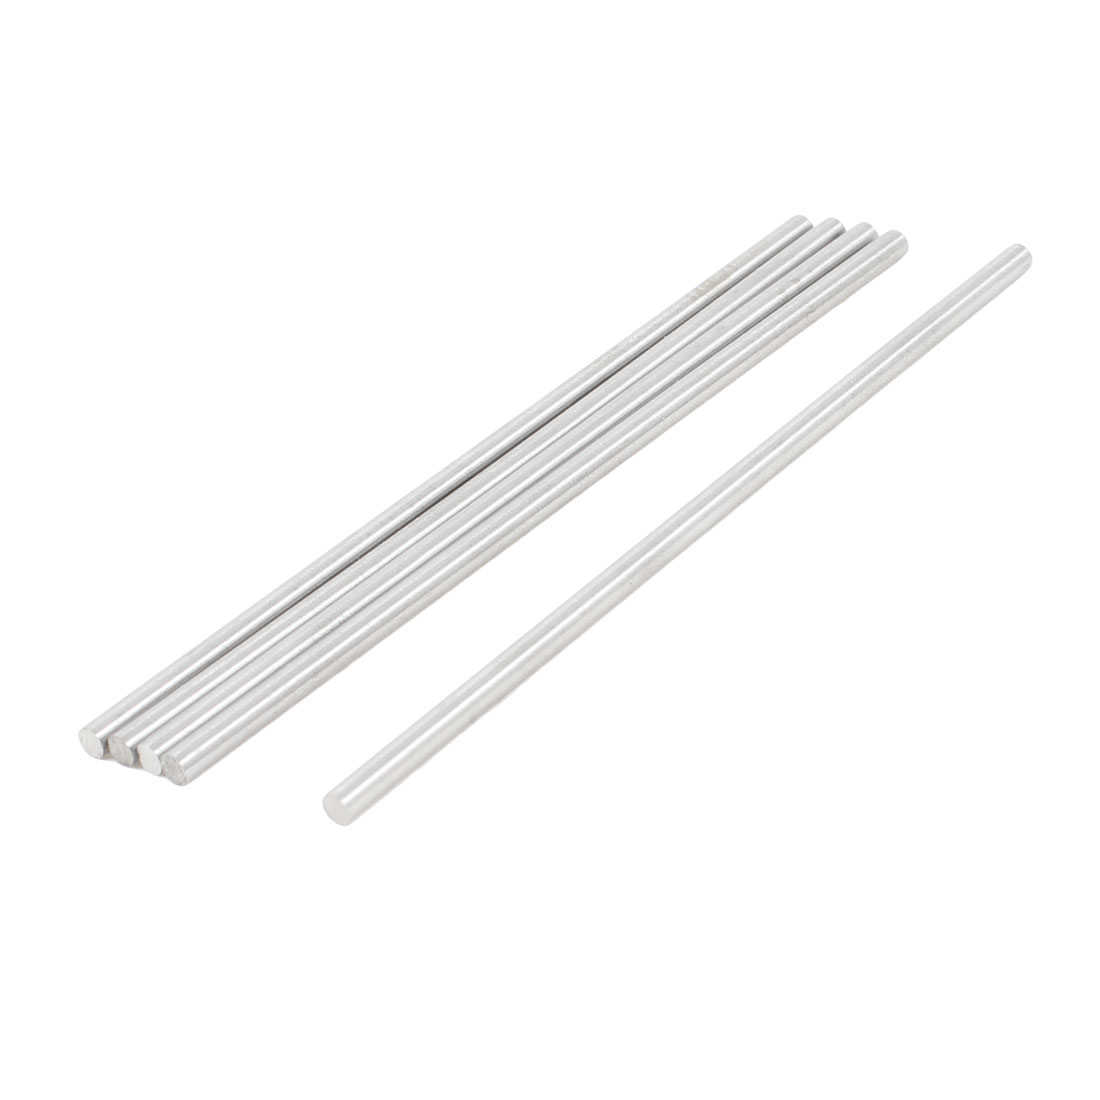 Unique Bargains 5 x High Speed Steel Round Turning Lathe Bars 3mm x 100mm